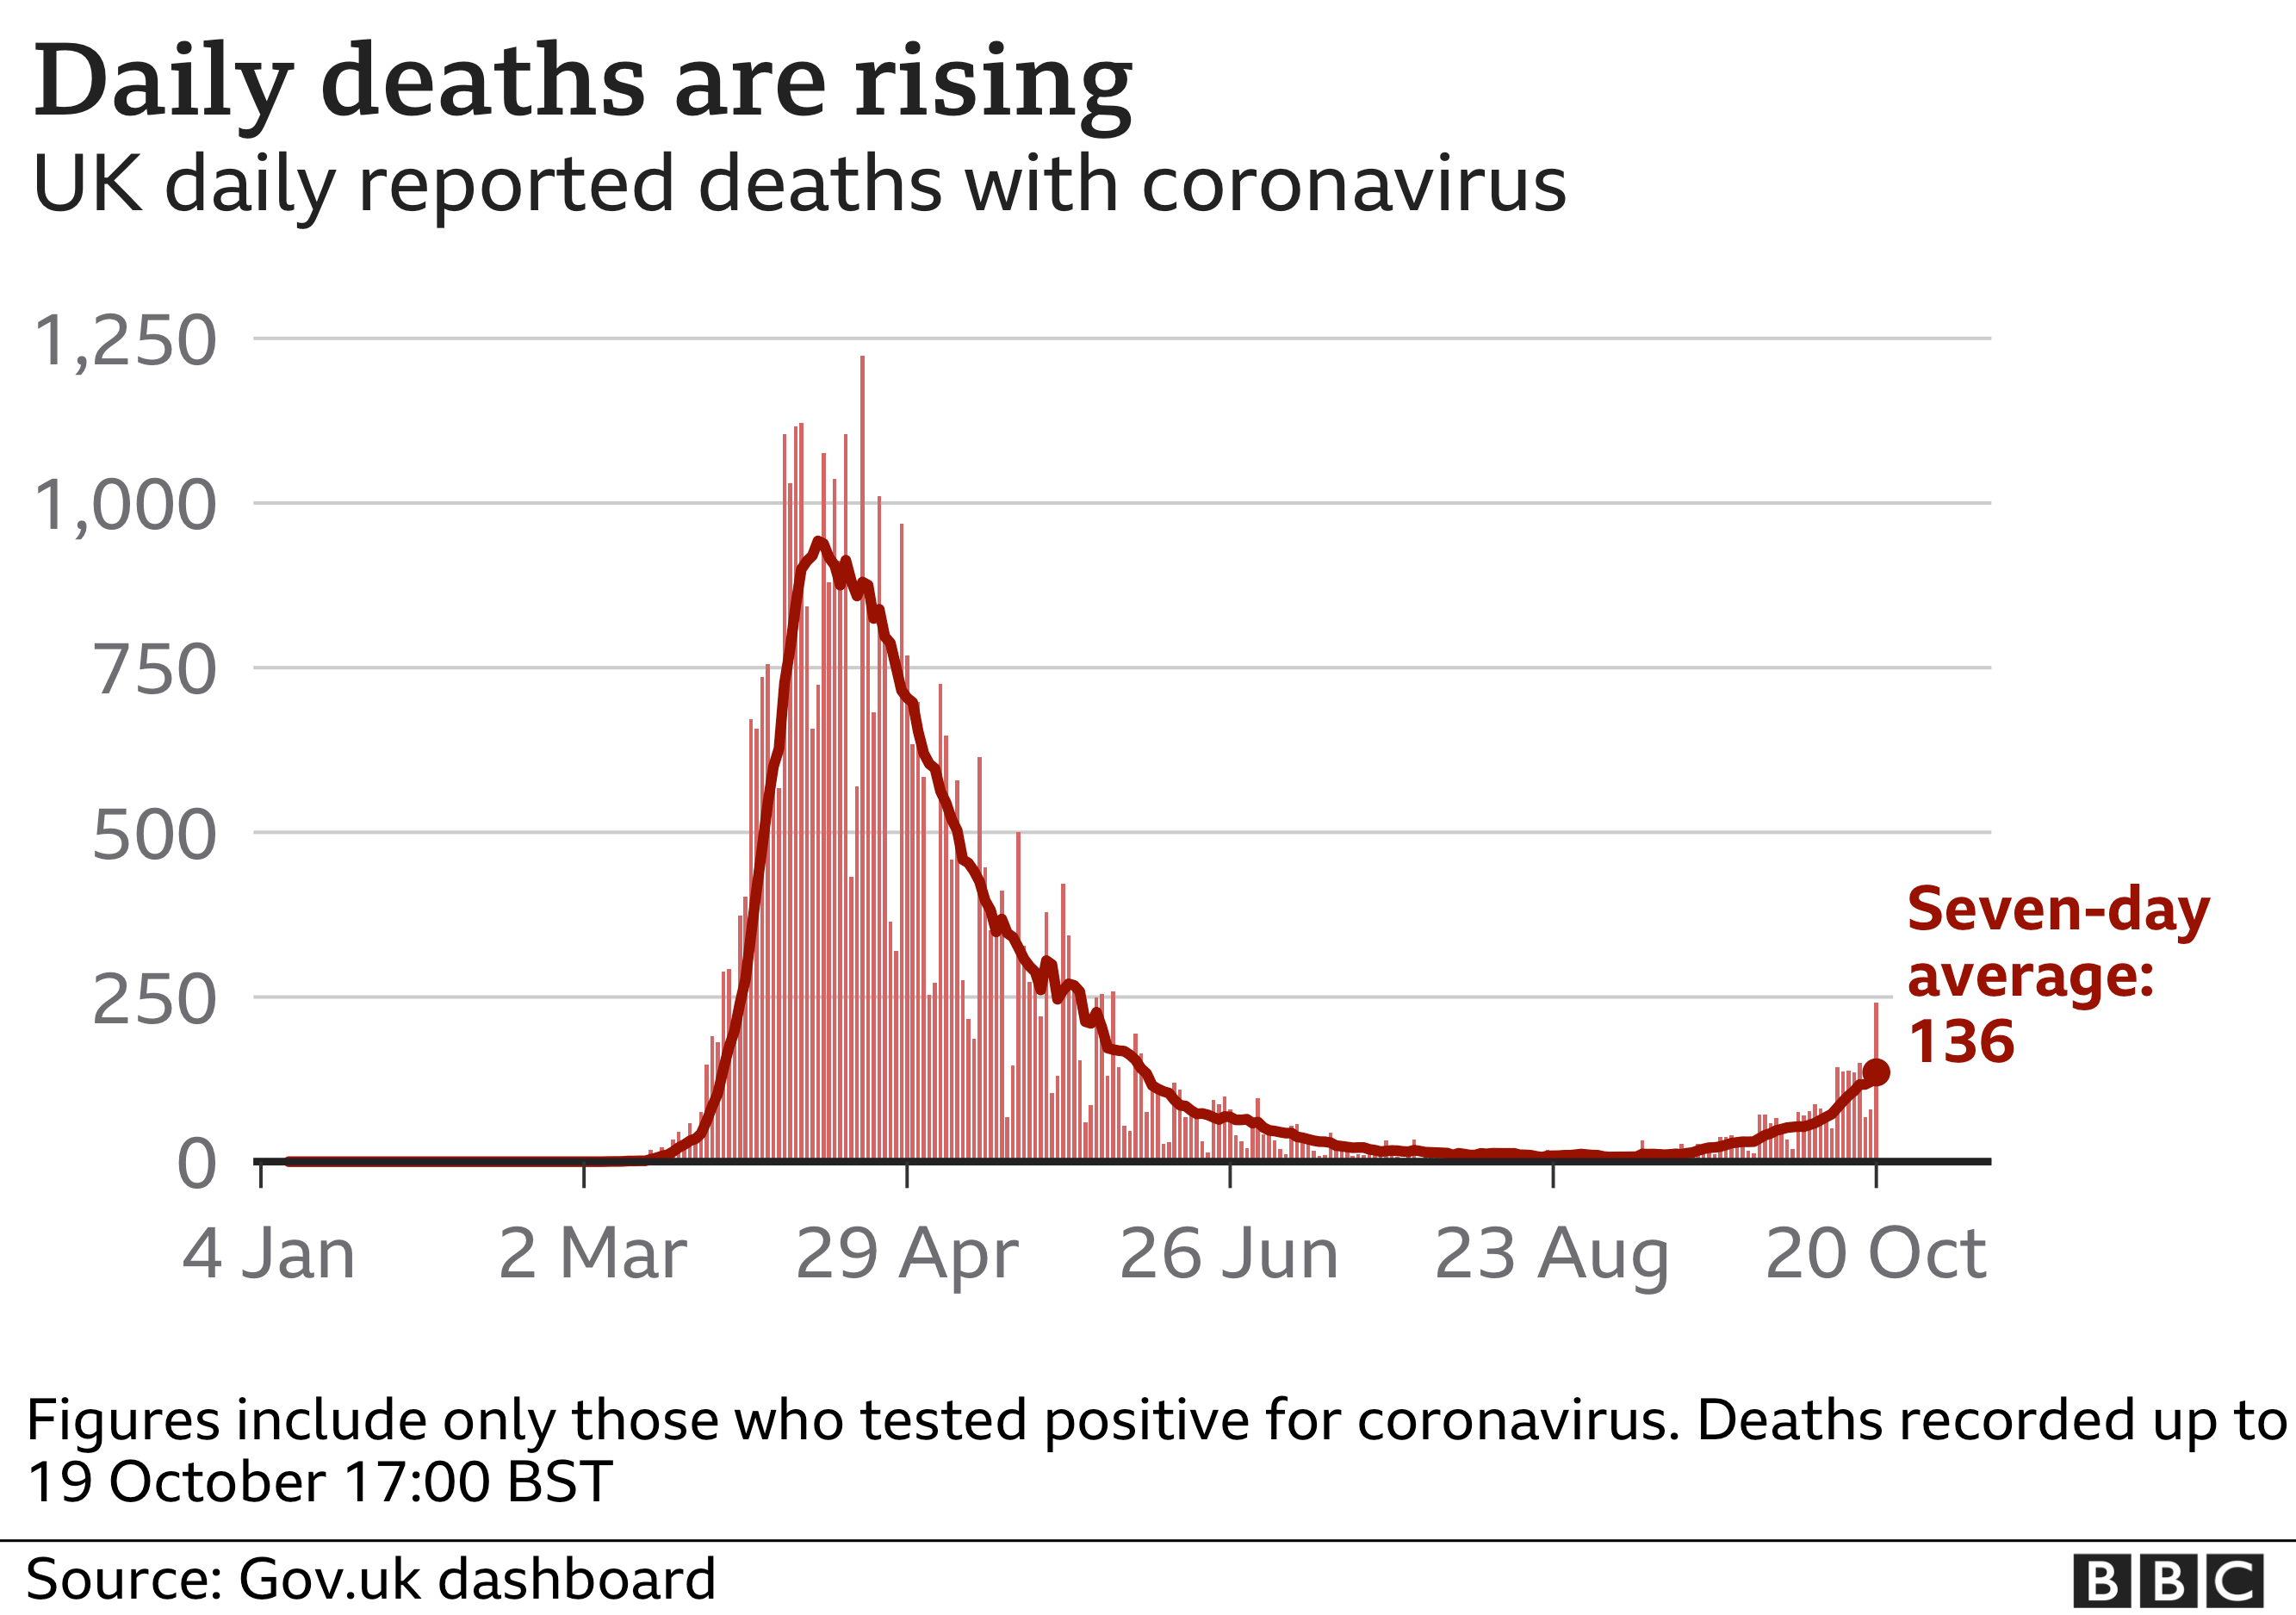 Chart showing daily deaths